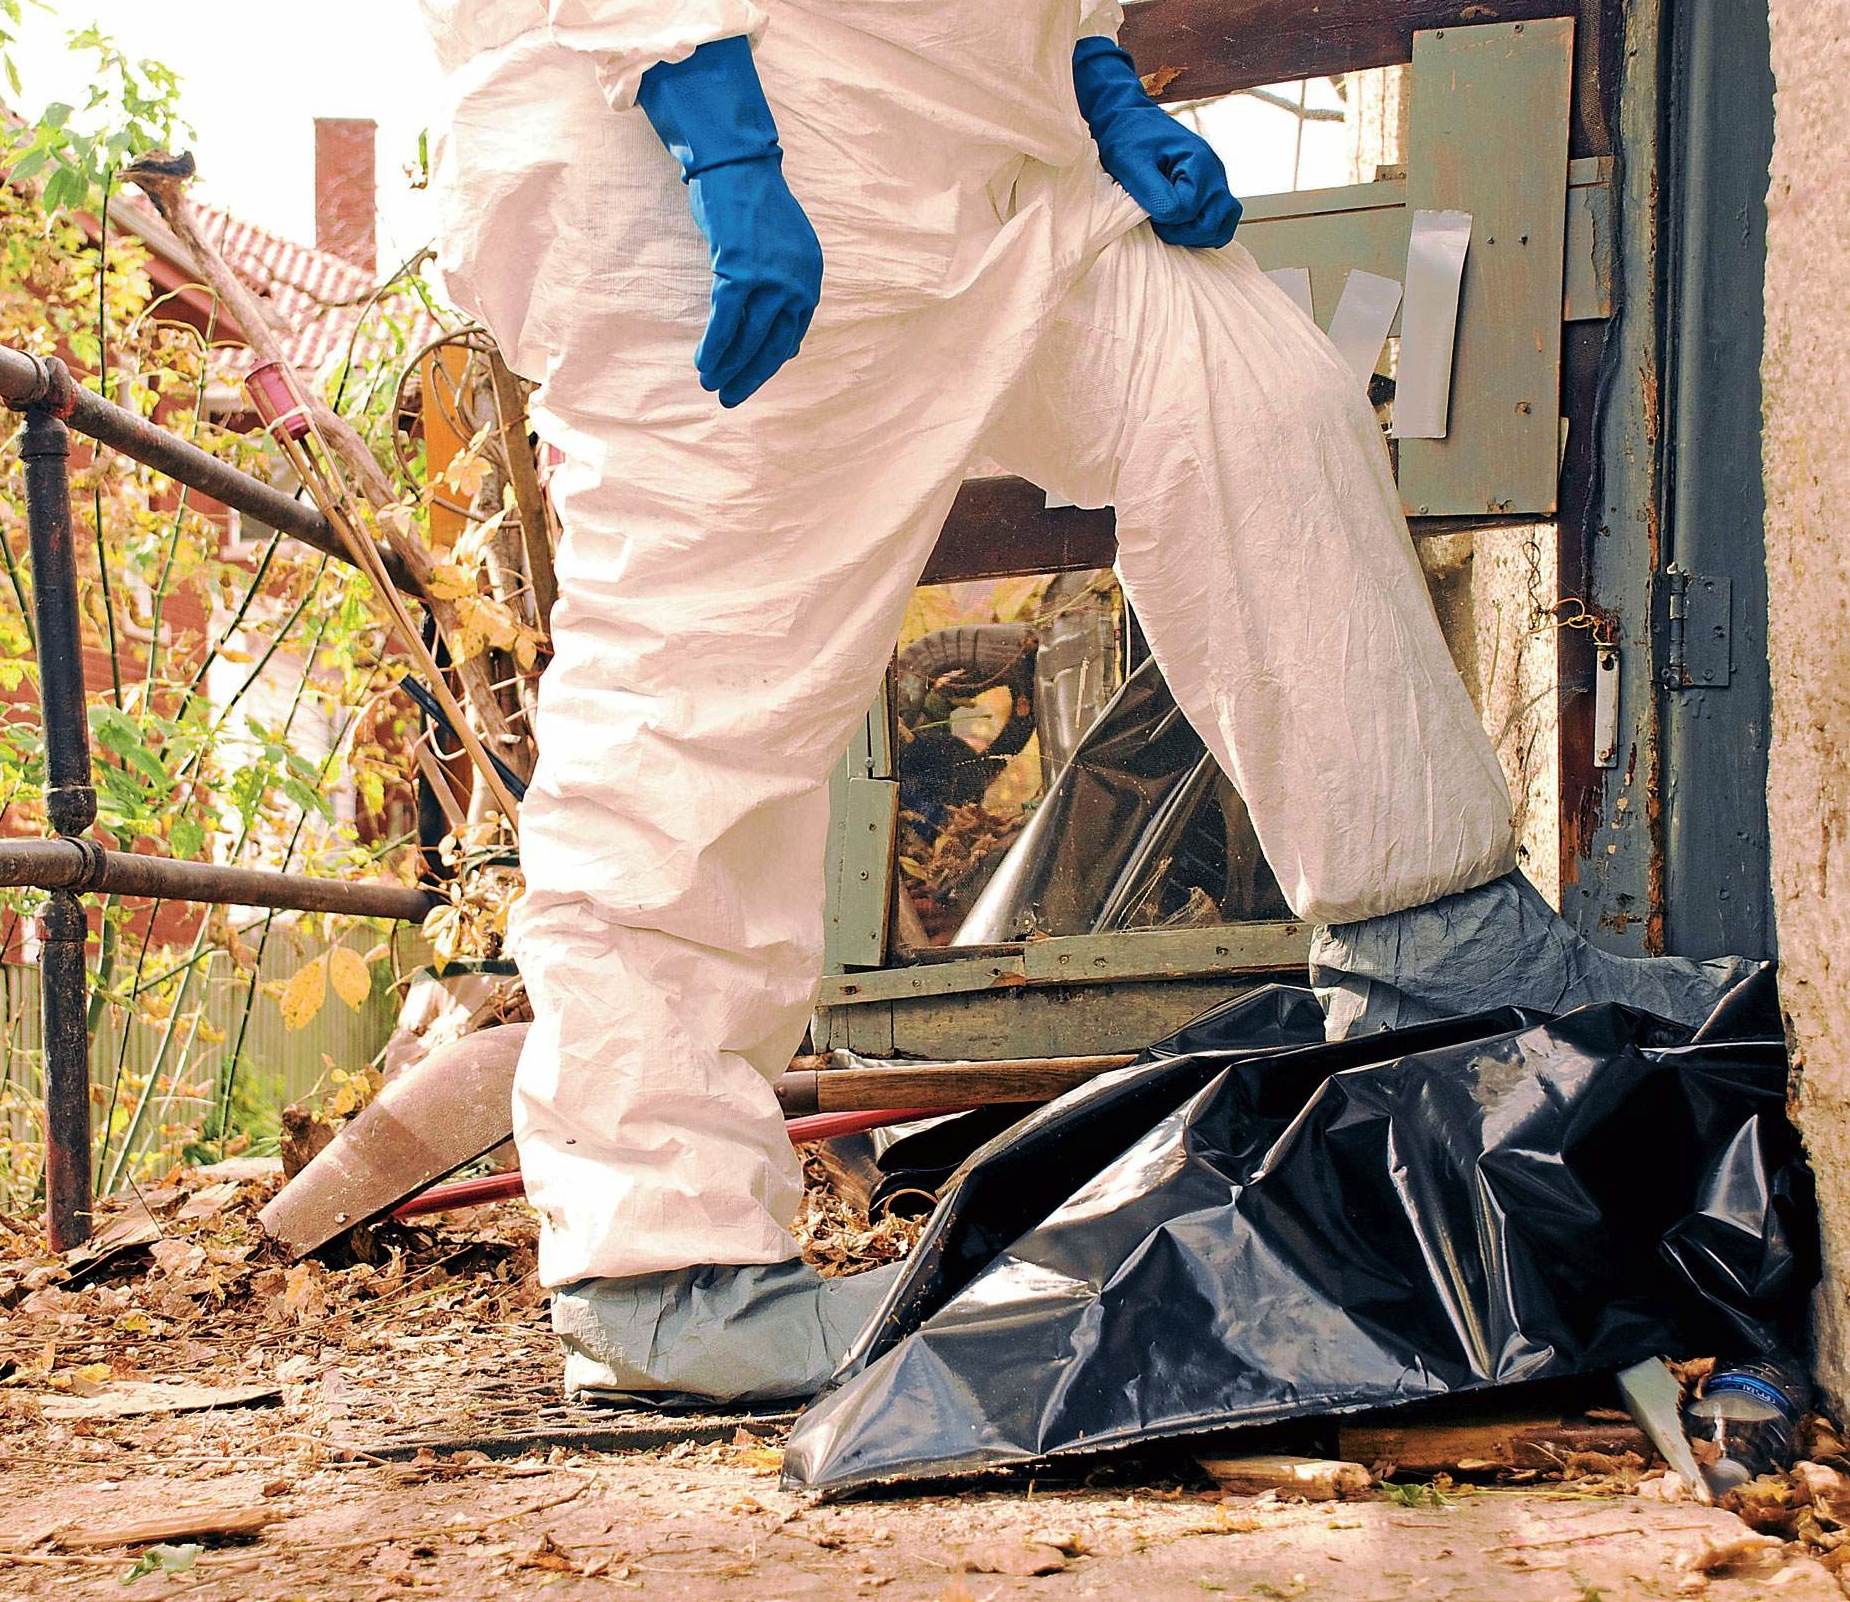 Rent Com: Could You Be Managing A Drug Lab?